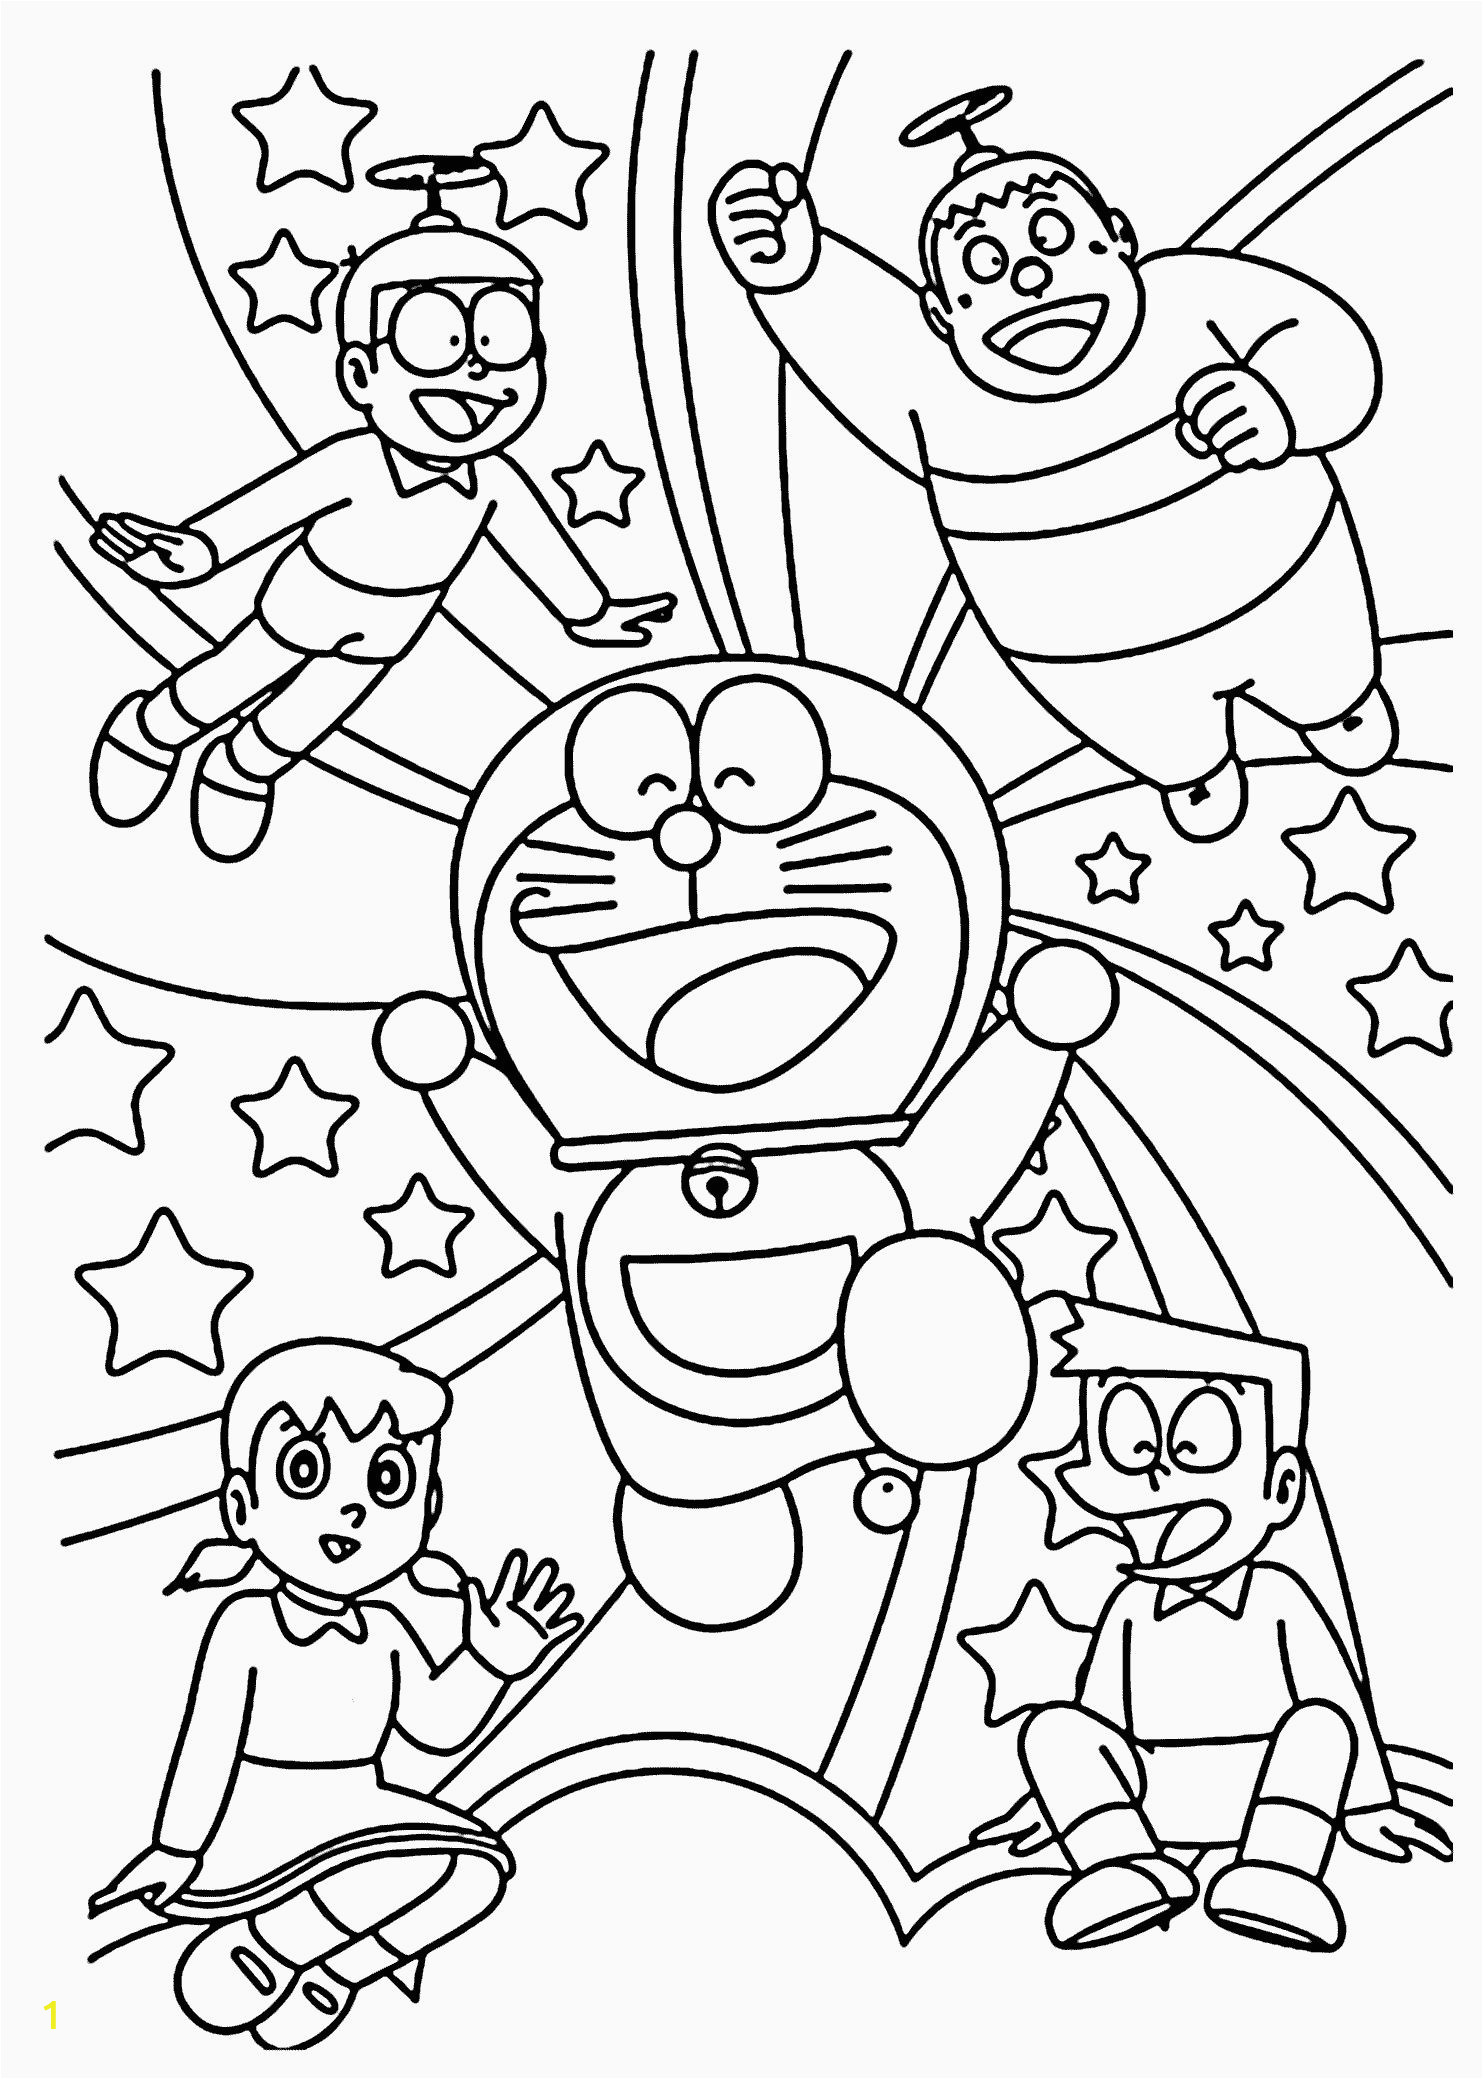 Doraemon Coloring Pages Pdf Download Cartoon Coloring Book Pdf In 2020